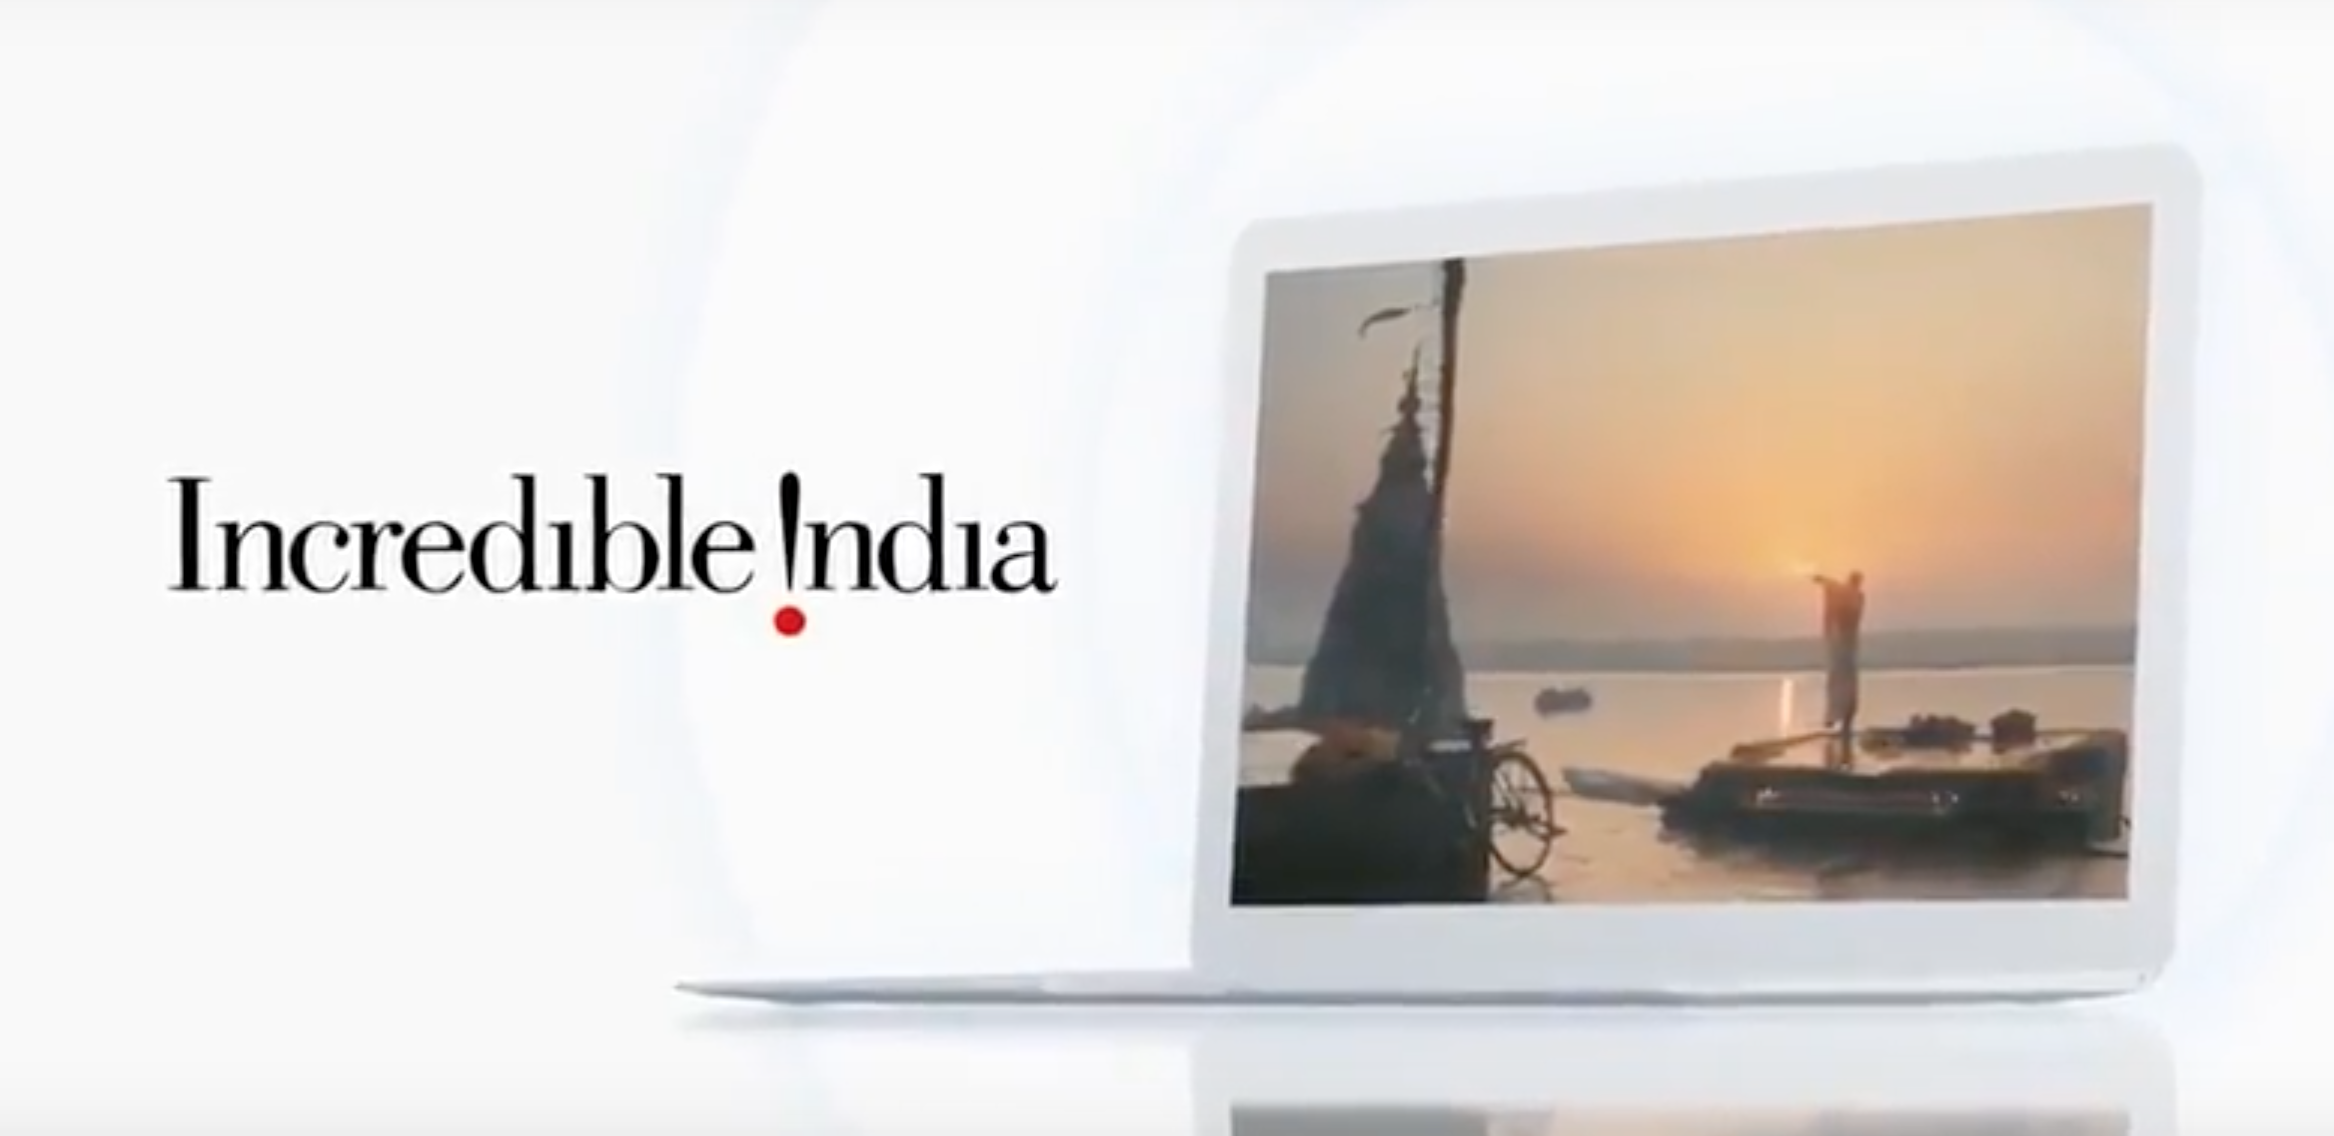 Incredible India 2.0 has a new website, what it means for India's digital tourism economy